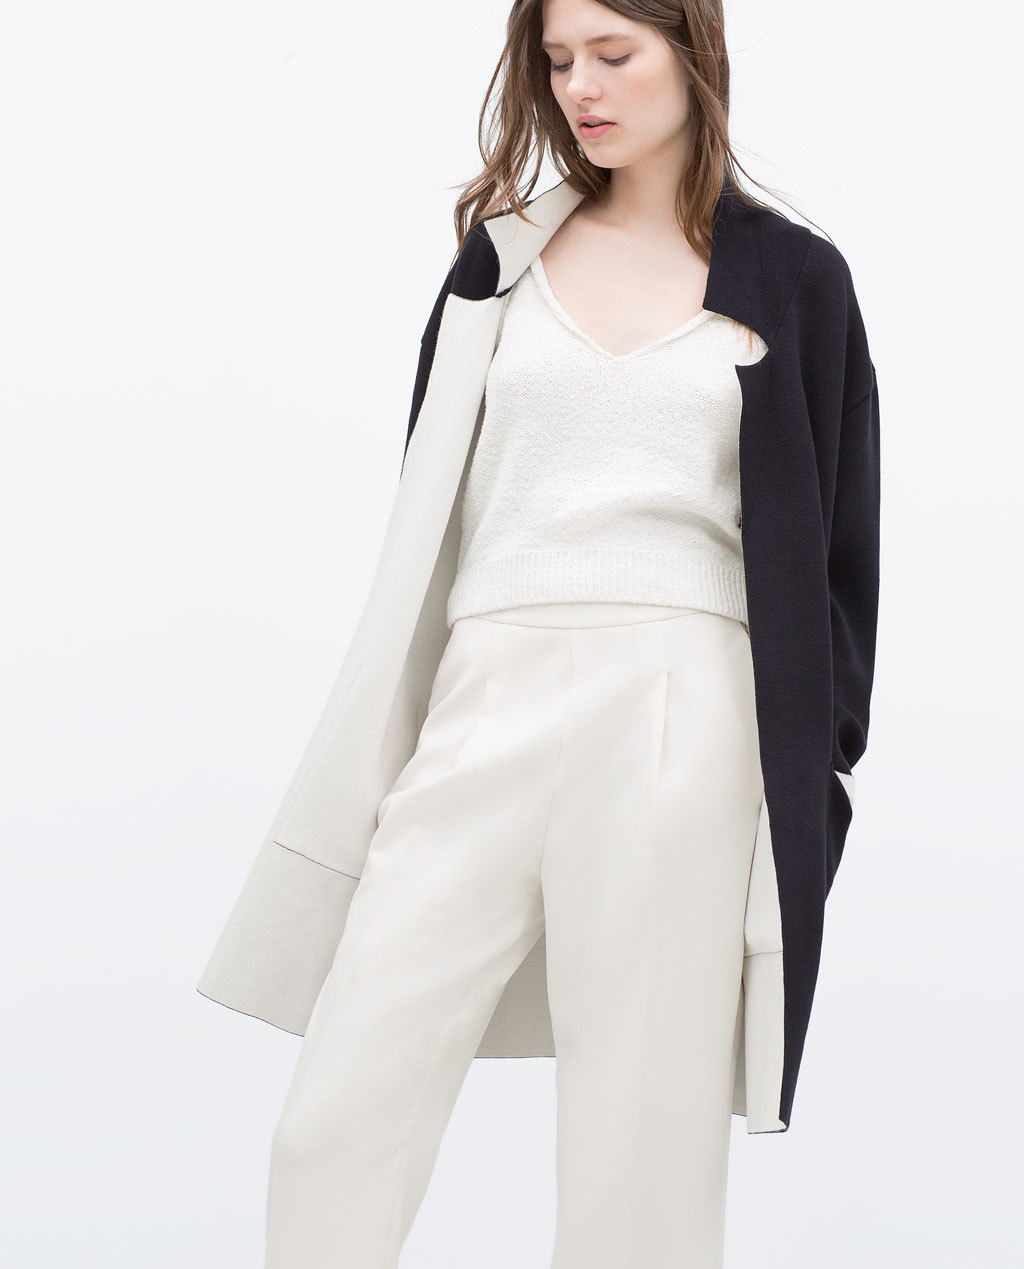 Double Sided Coat - style: single breasted; collar: standard lapel/rever collar; length: mid thigh; secondary colour: ivory/cream; predominant colour: black; occasions: casual, creative work; fit: straight cut (boxy); sleeve length: long sleeve; sleeve style: standard; collar break: medium; pattern type: fabric; pattern: colourblock; texture group: woven bulky/heavy; fibres: viscose/rayon - mix; season: s/s 2015